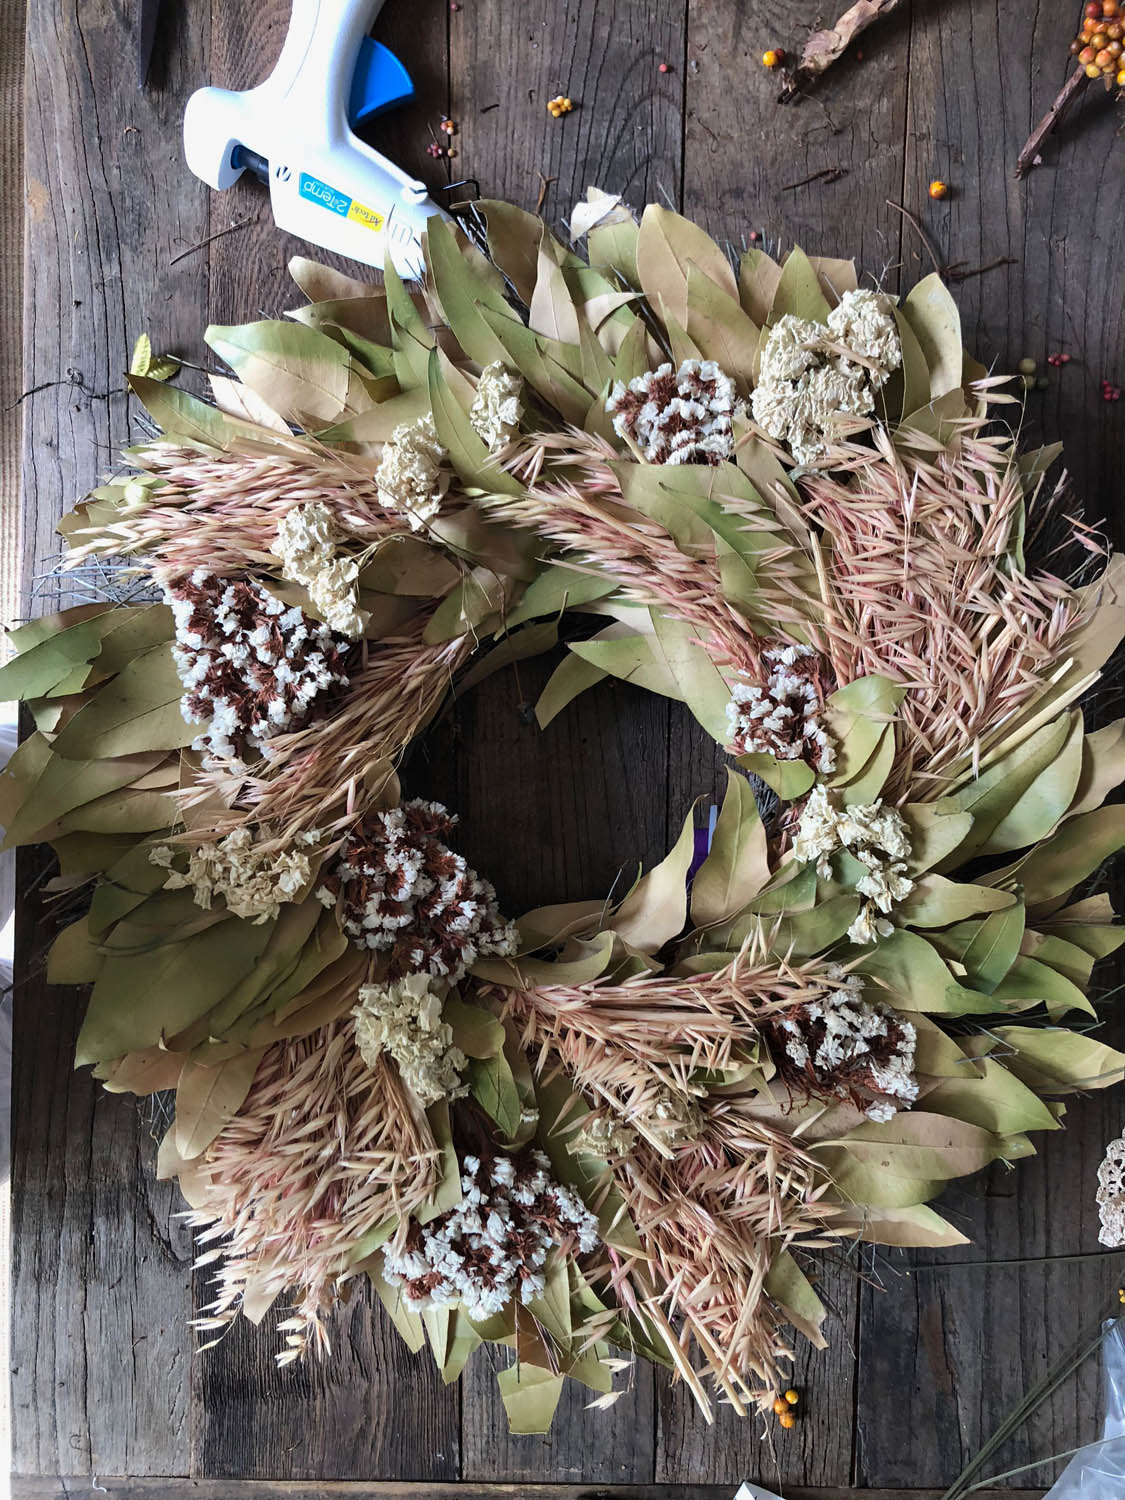 Faded old wreath ready for upcycle redo.